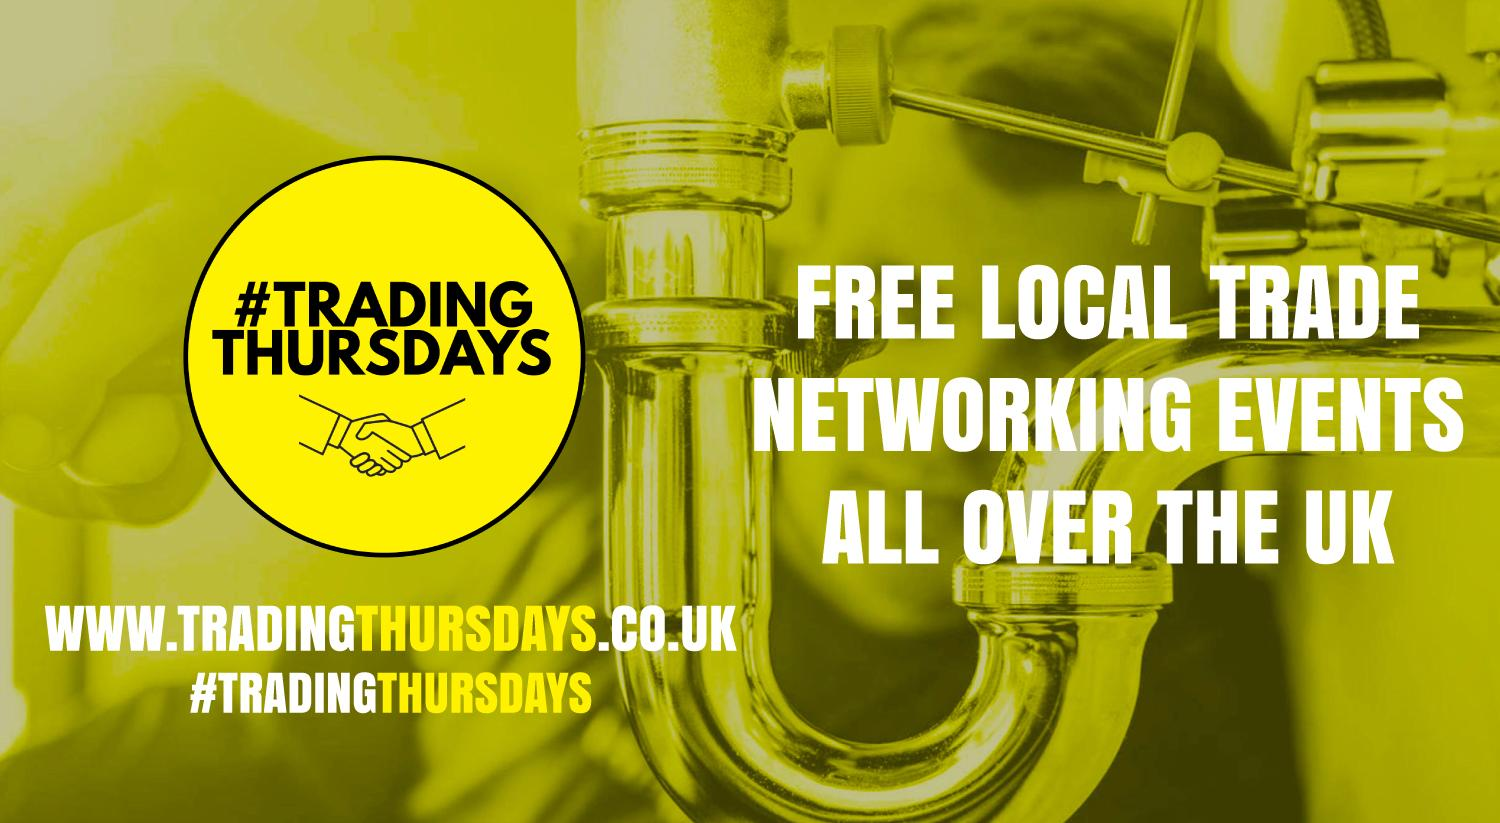 Trading Thursdays! Free networking event for traders in St Helens